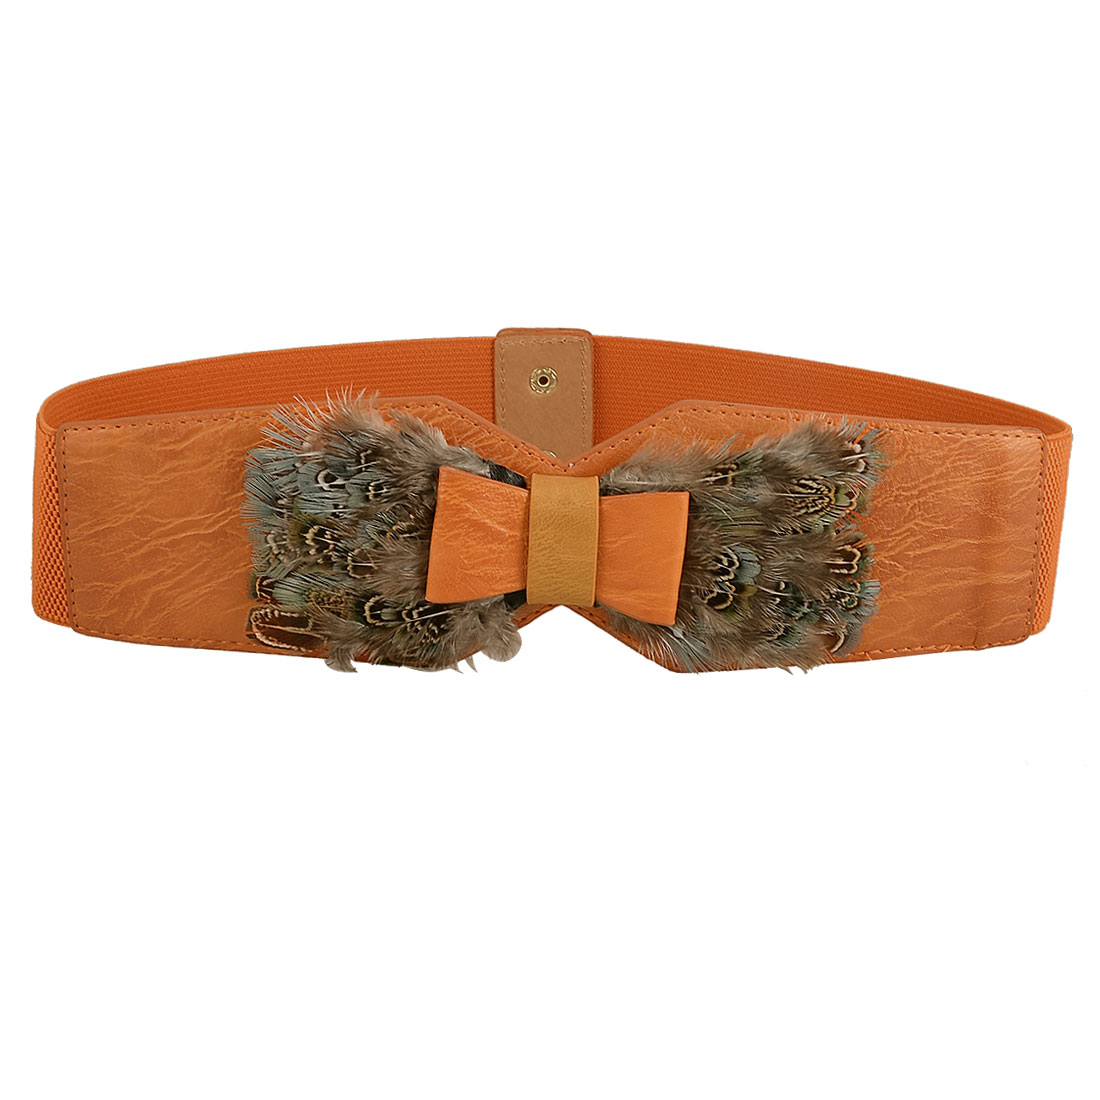 Orange Faux Leather Bowknot Decor Stretchy Cinch Waistband Belt for Lady